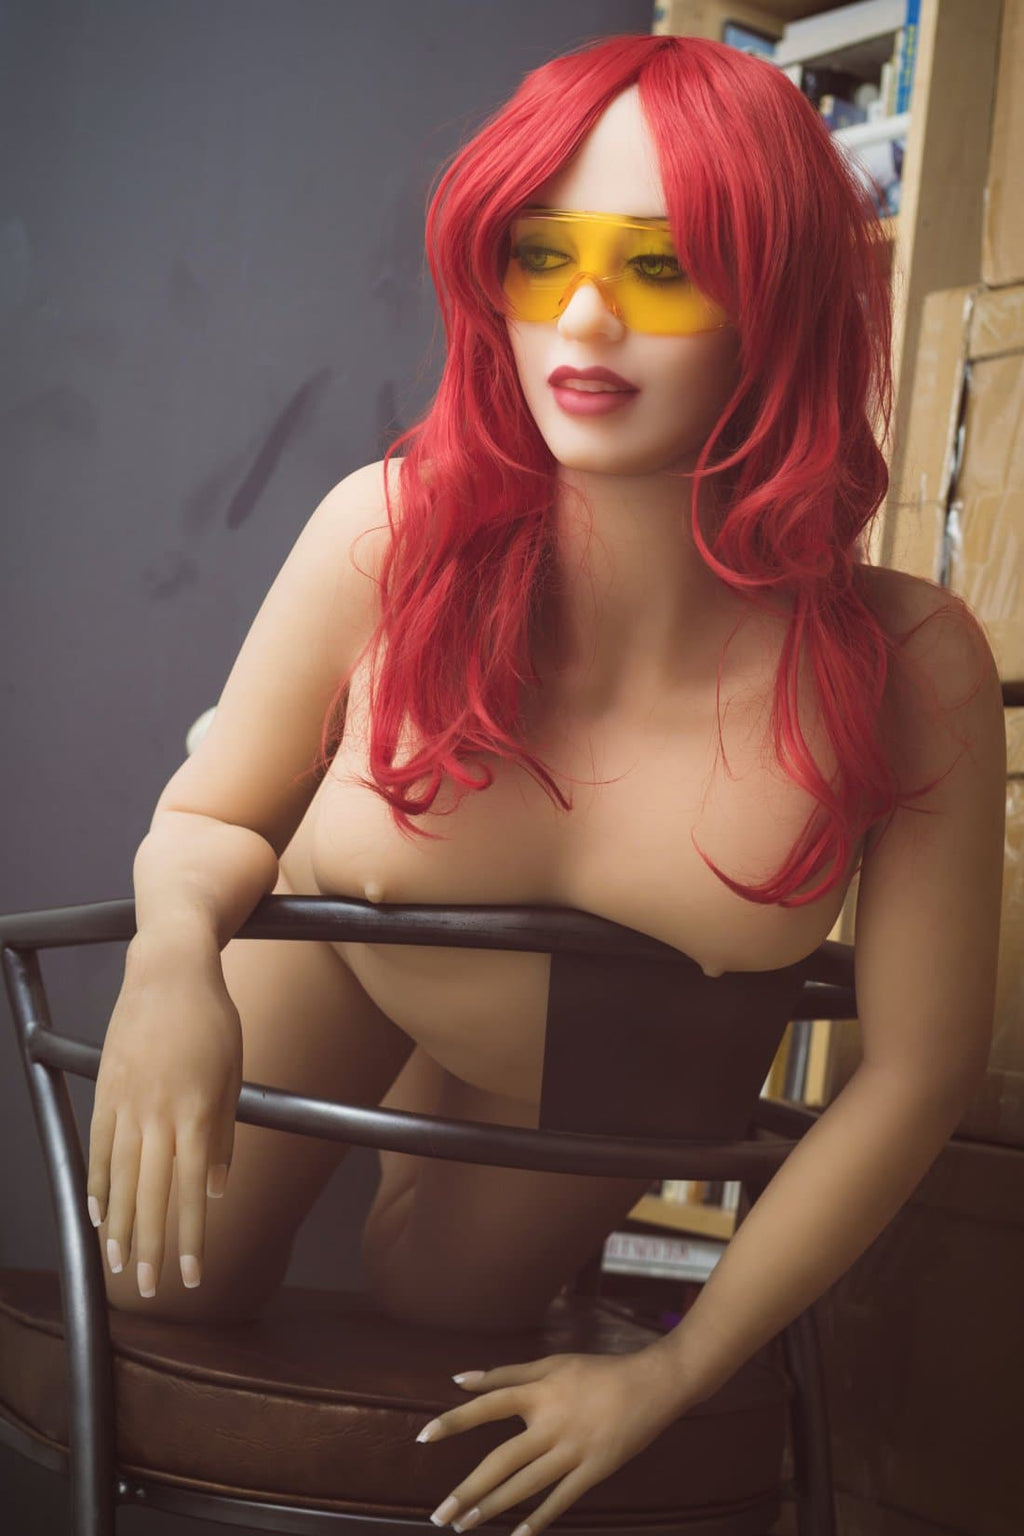 irina 162cm curvy medium tits athletic red hair tpe wm sex doll